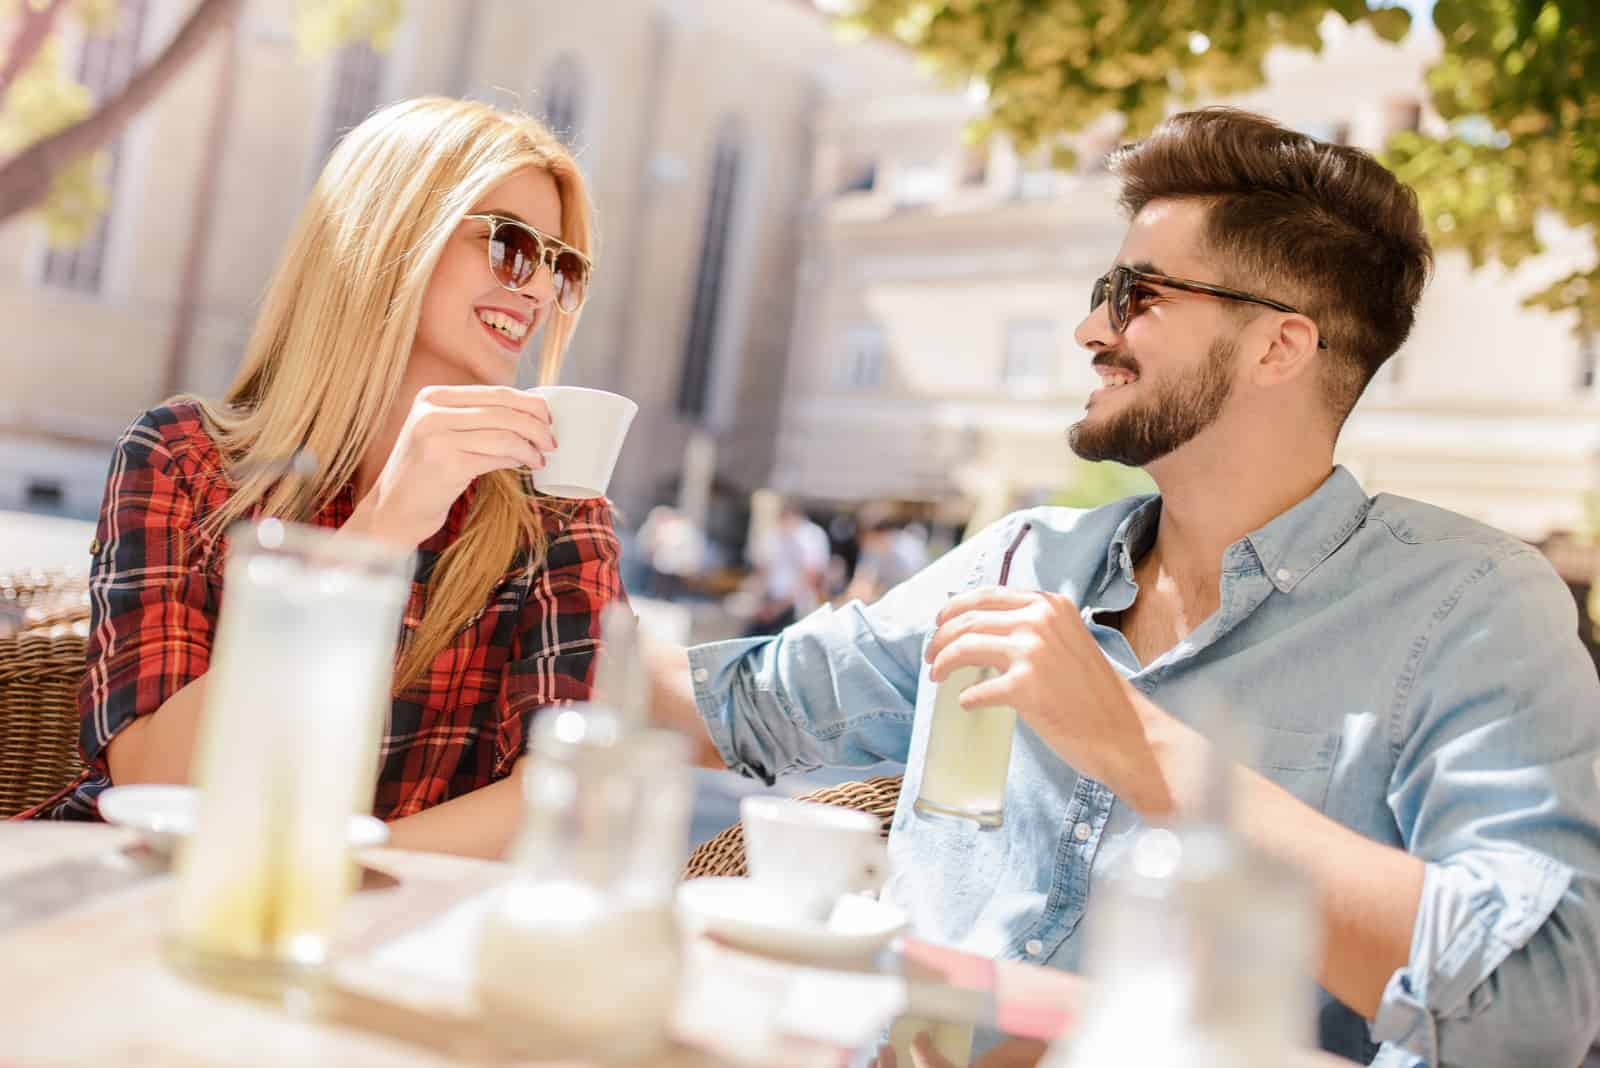 a smiling man and woman sit outdoors and talk over coffee